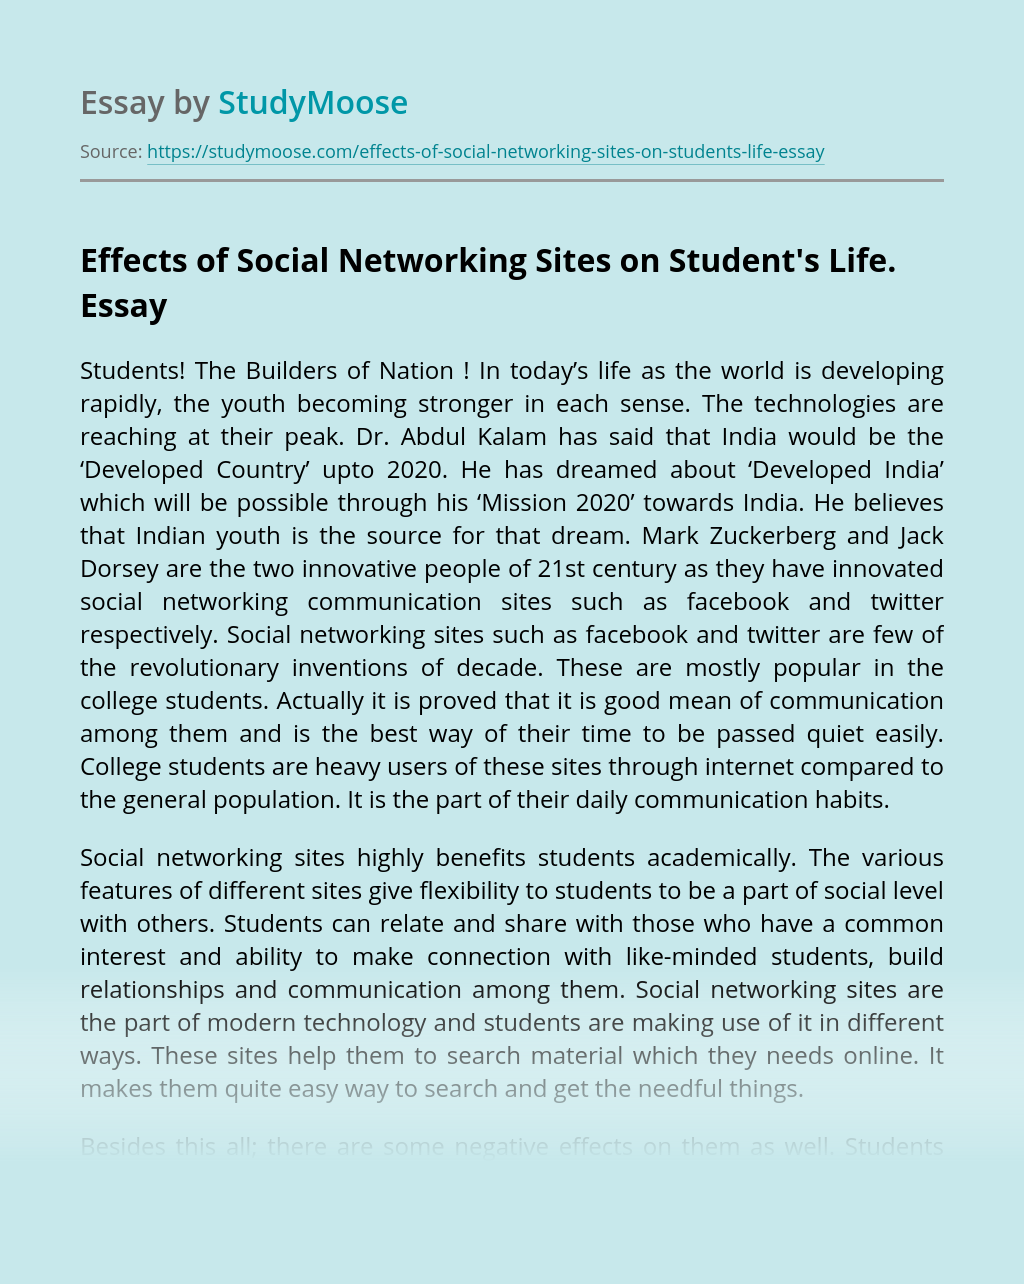 Effects of Social Networking Sites on Student's Life.